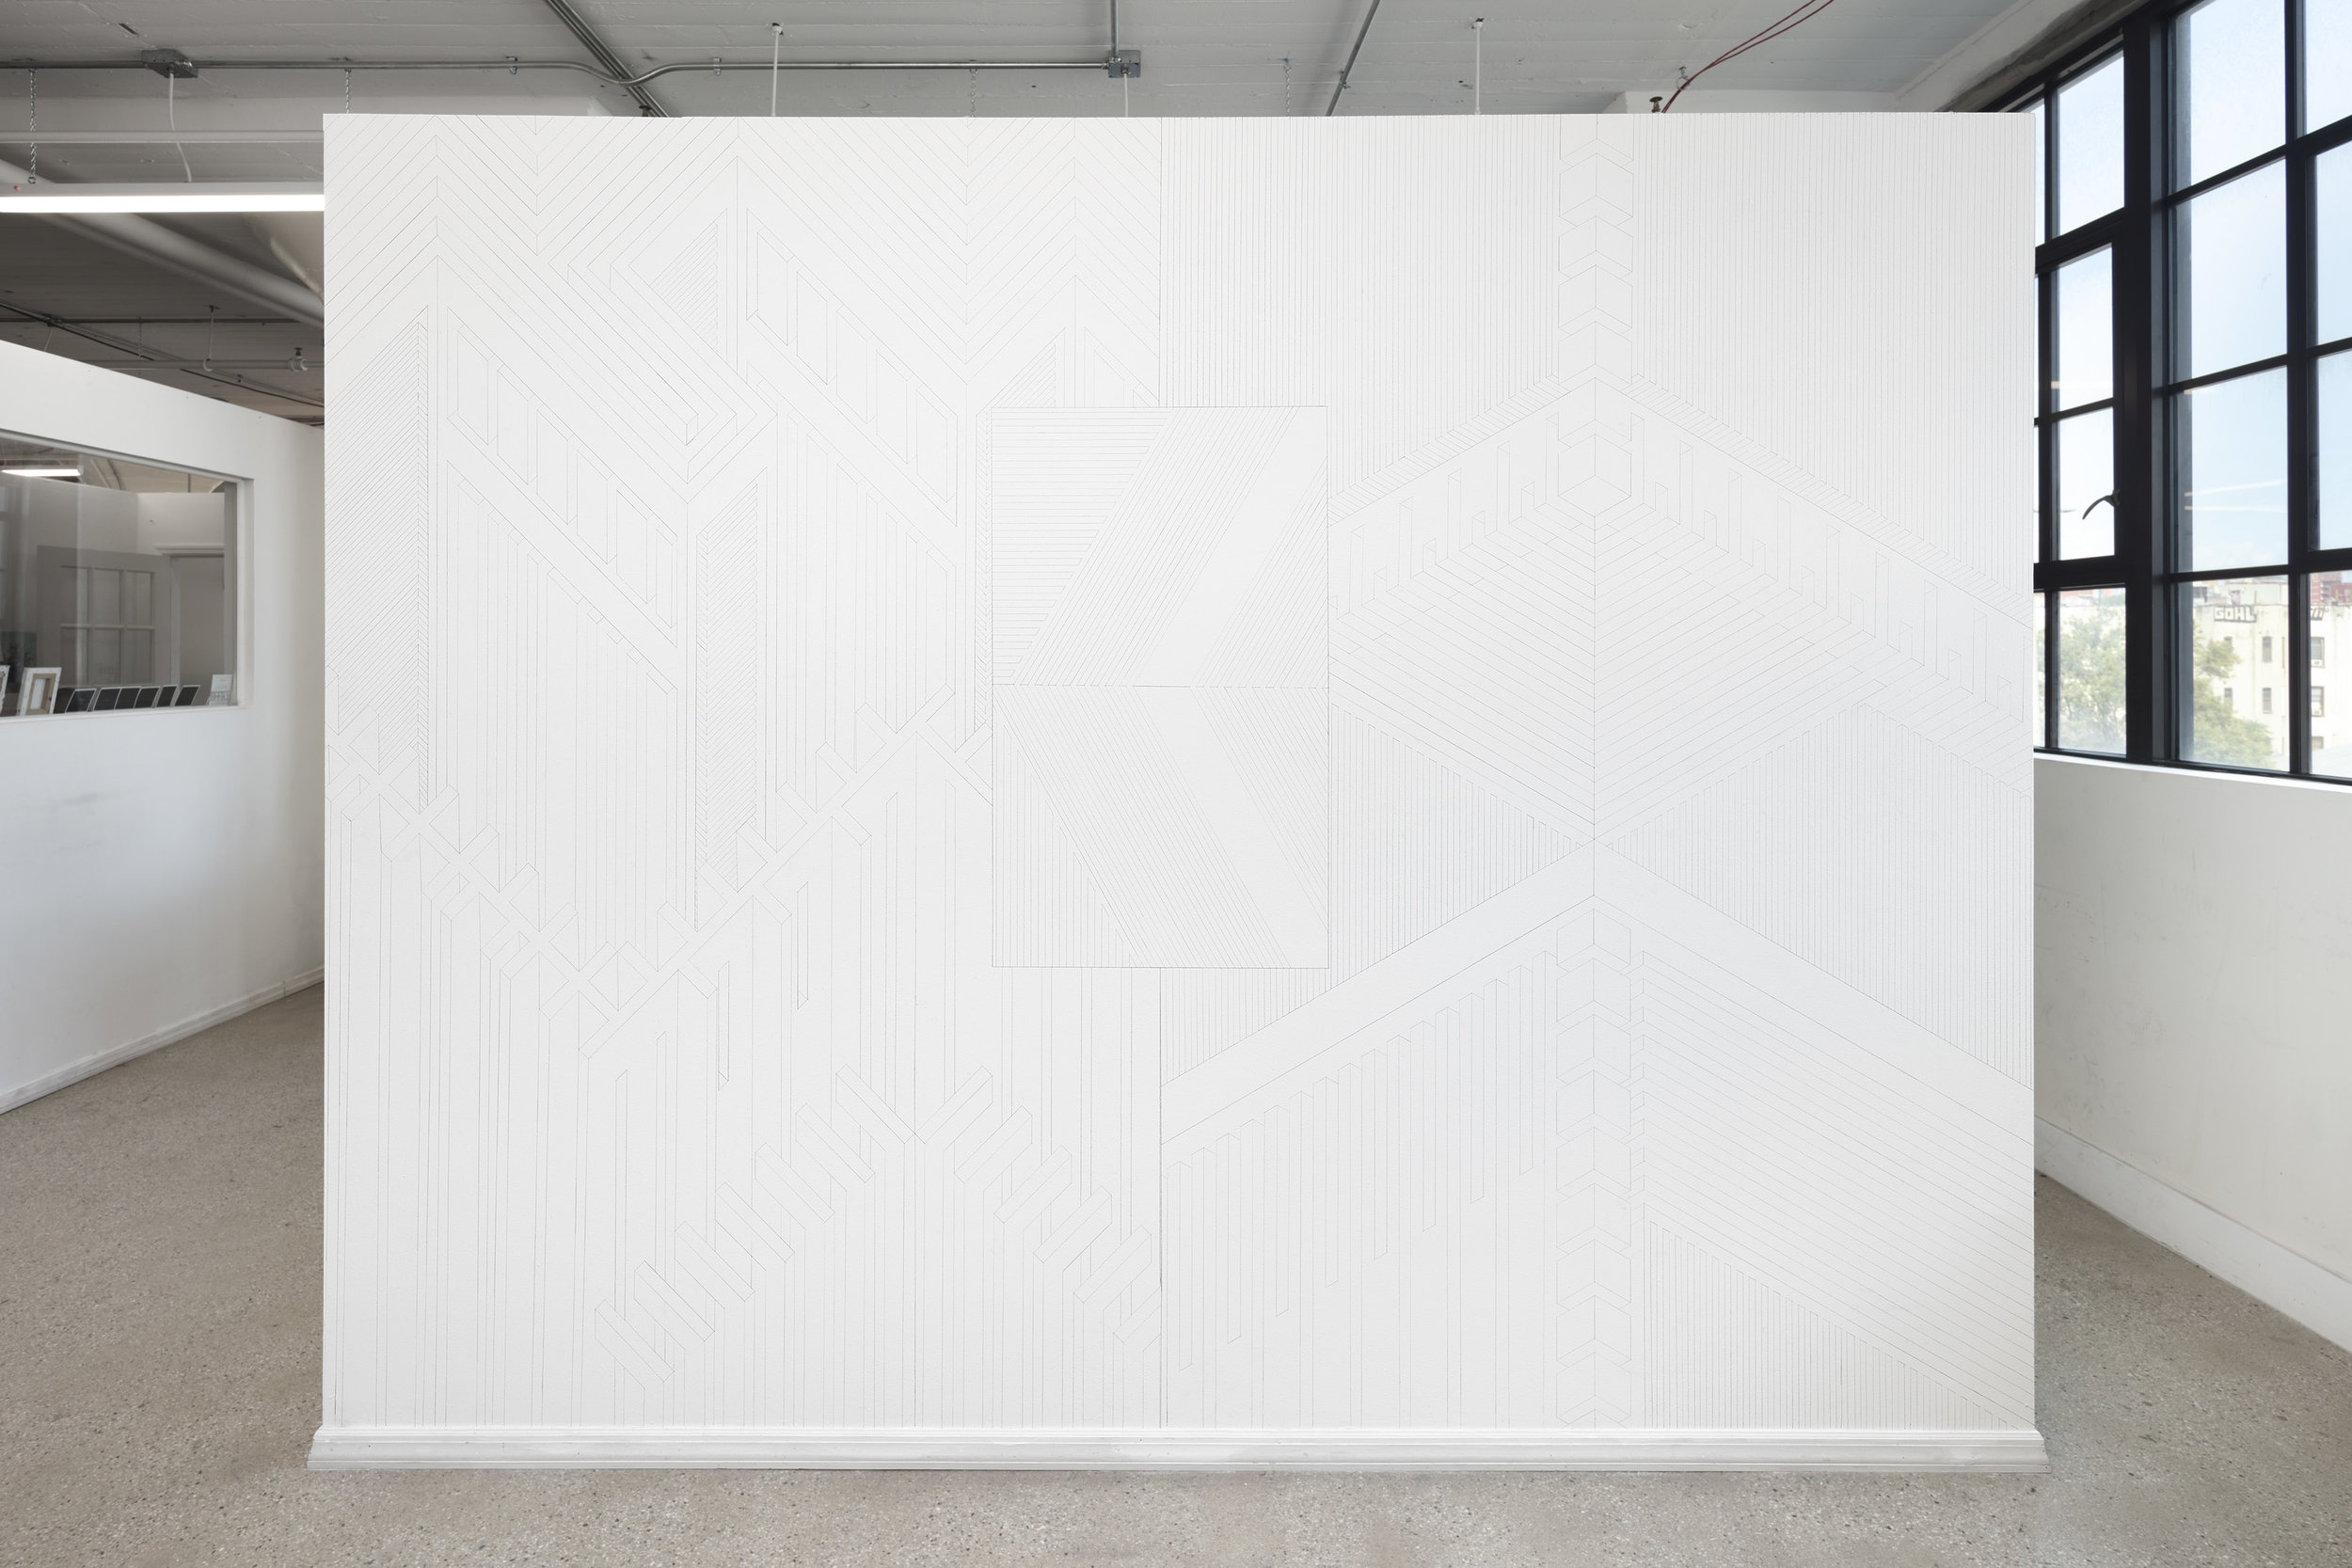 Facility 10, 2019  graphite on wall  8 x 10 feet